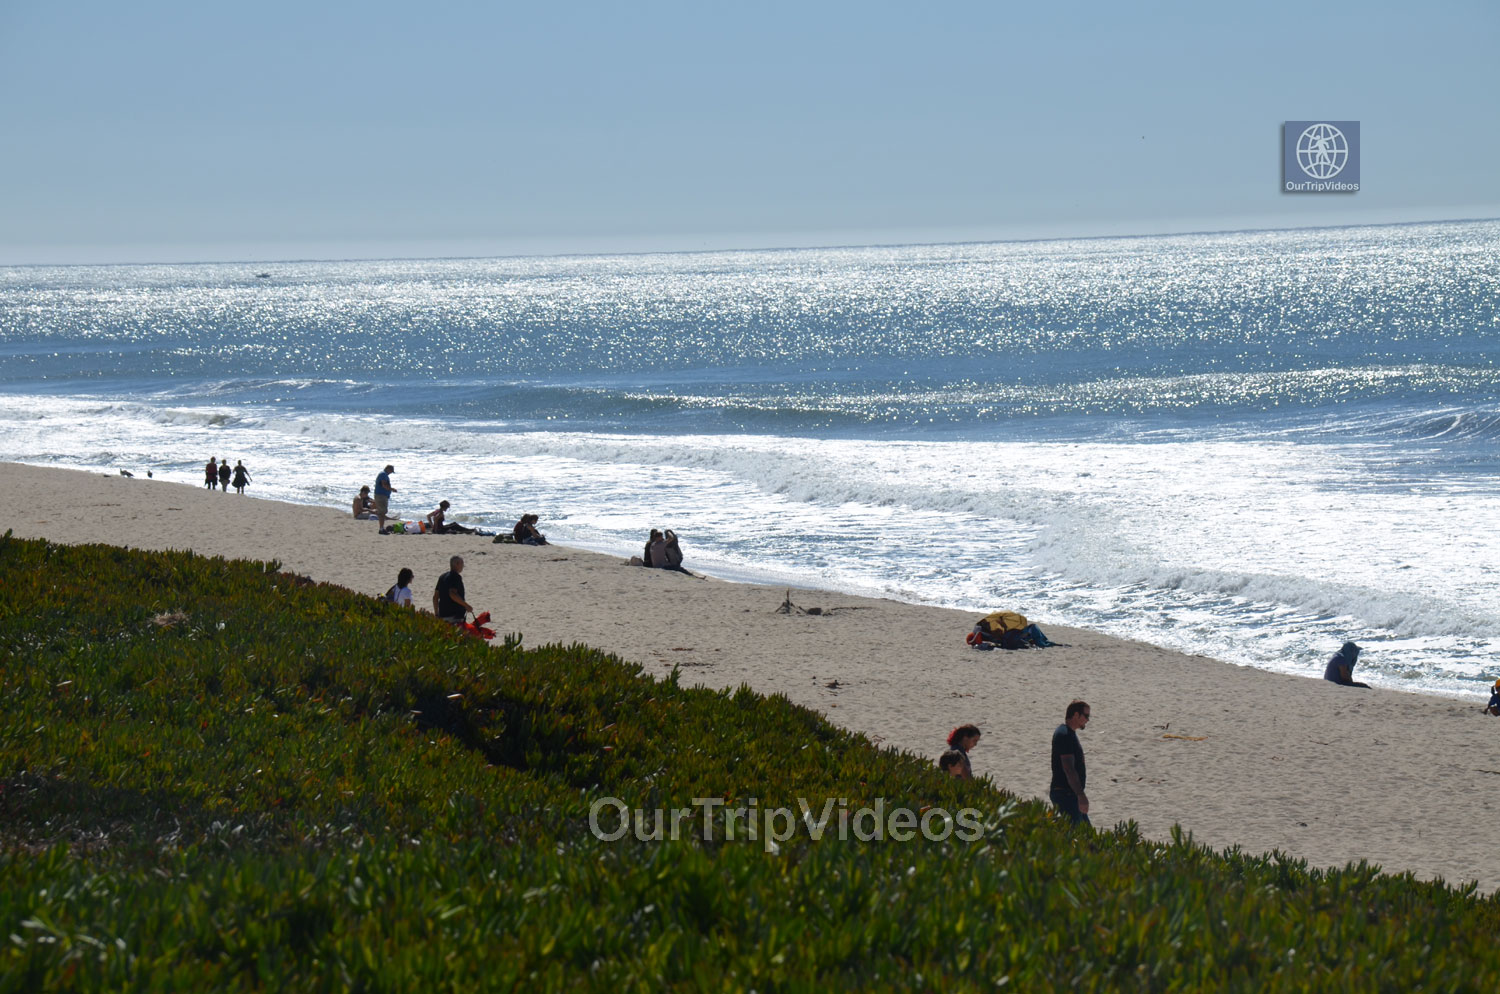 State Beach(Francis Beach), Half Moon Bay, CA, USA - Picture 10 of 25